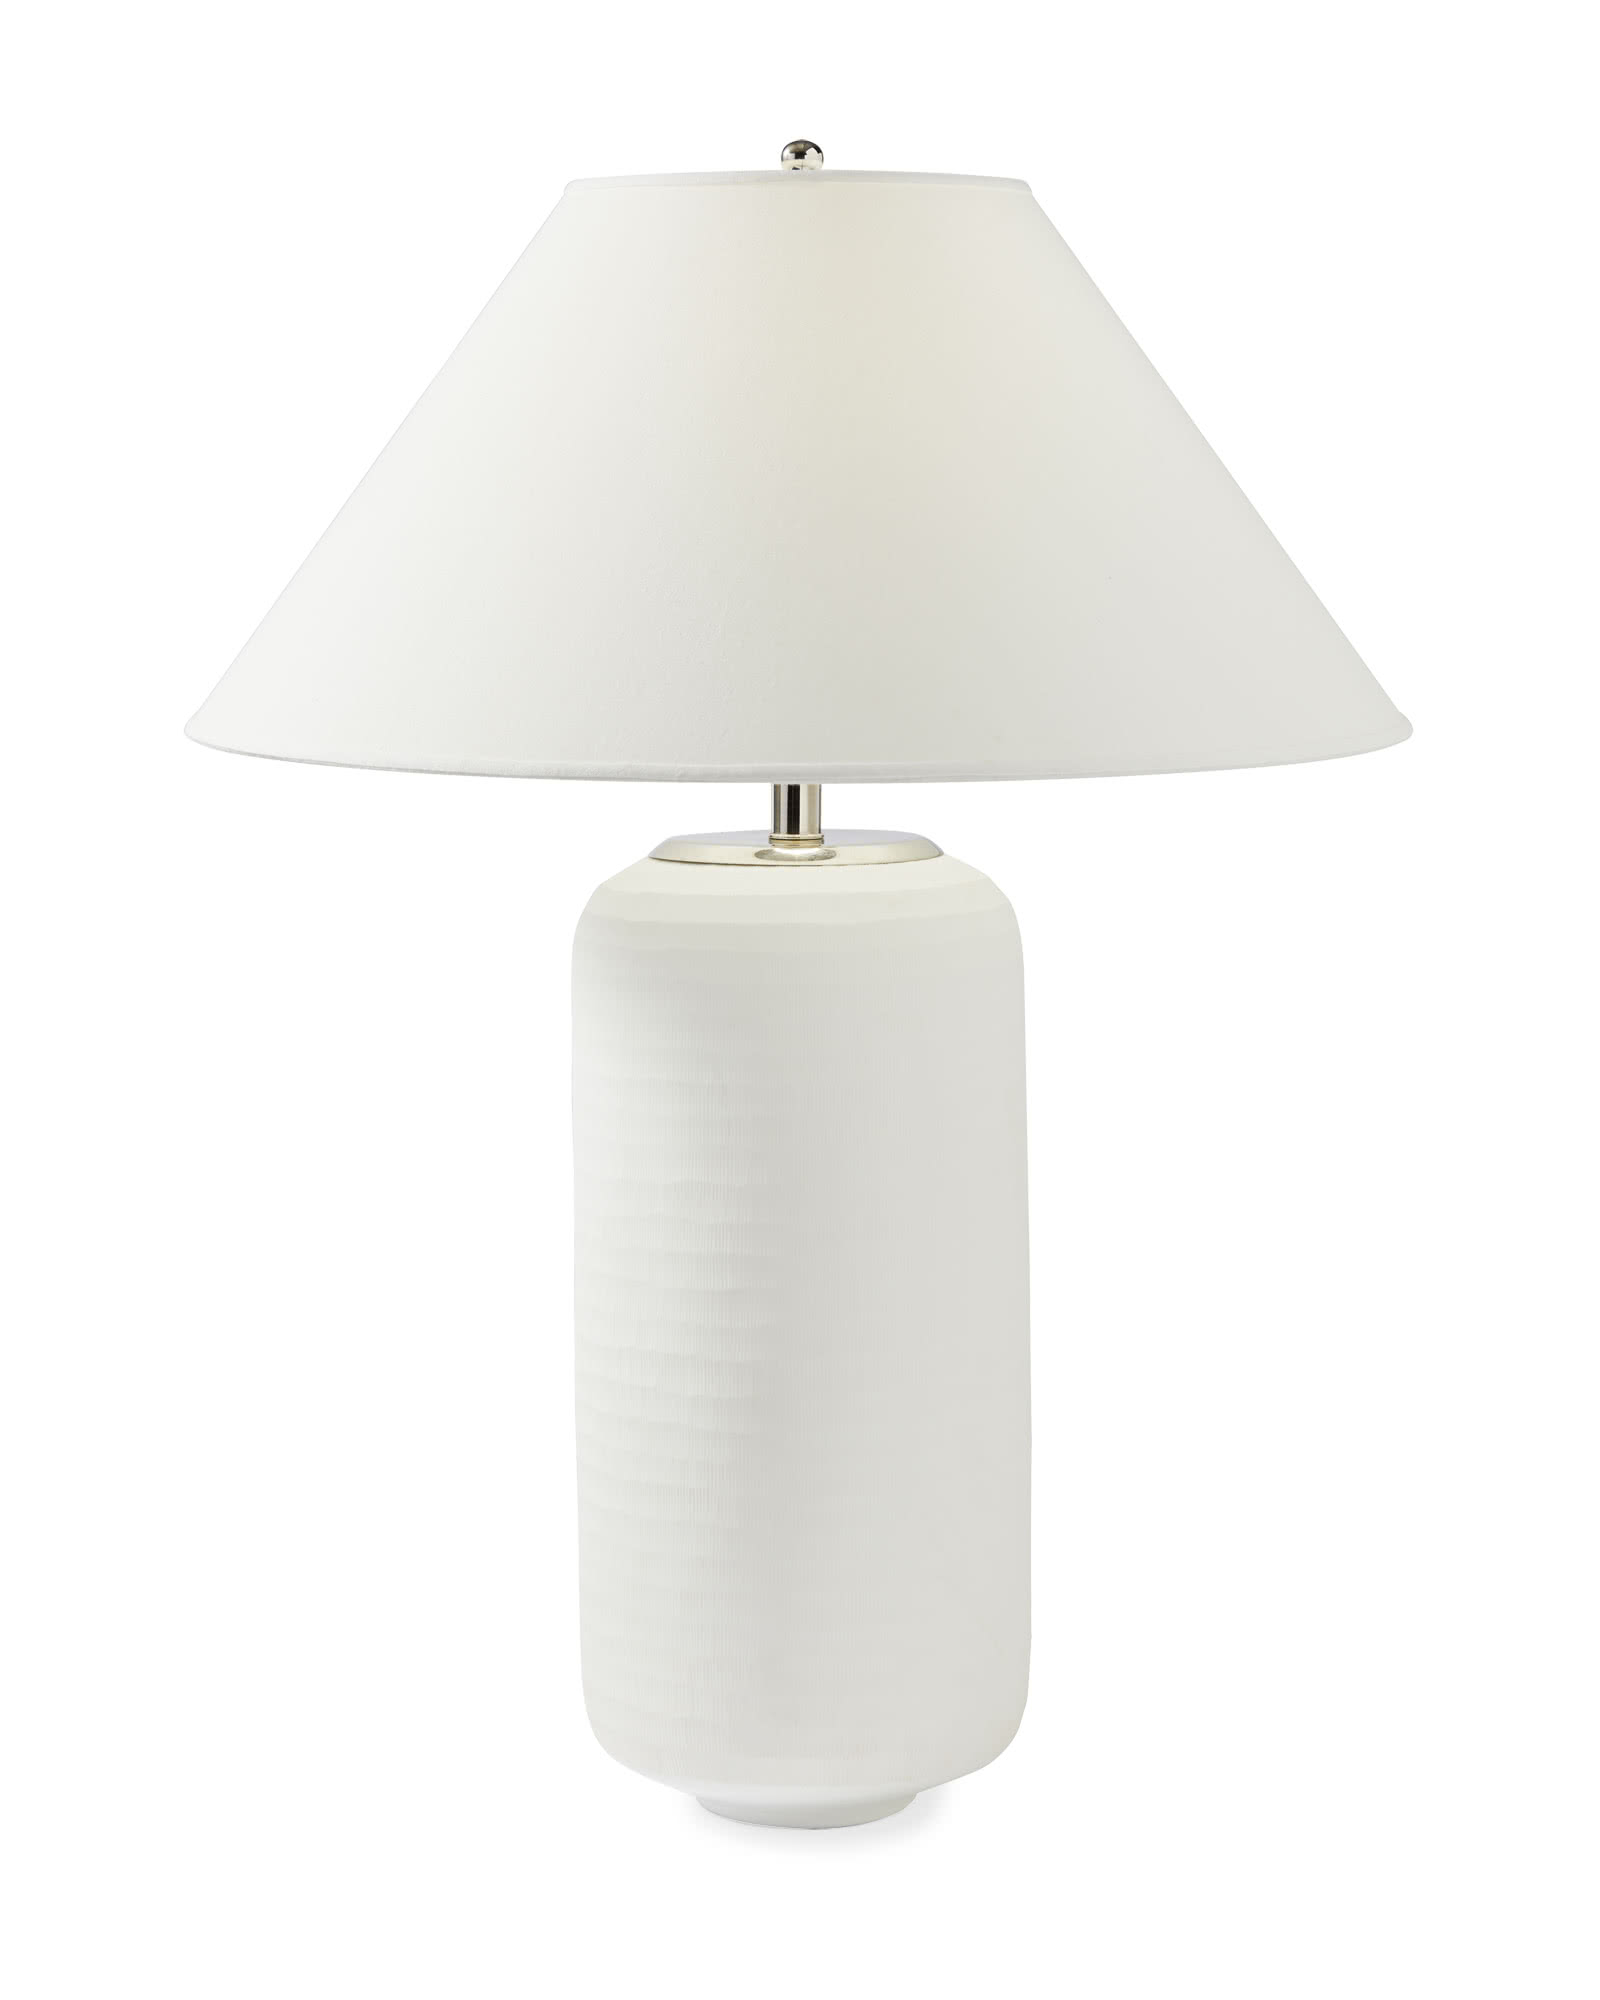 Calypso Table Lamp,